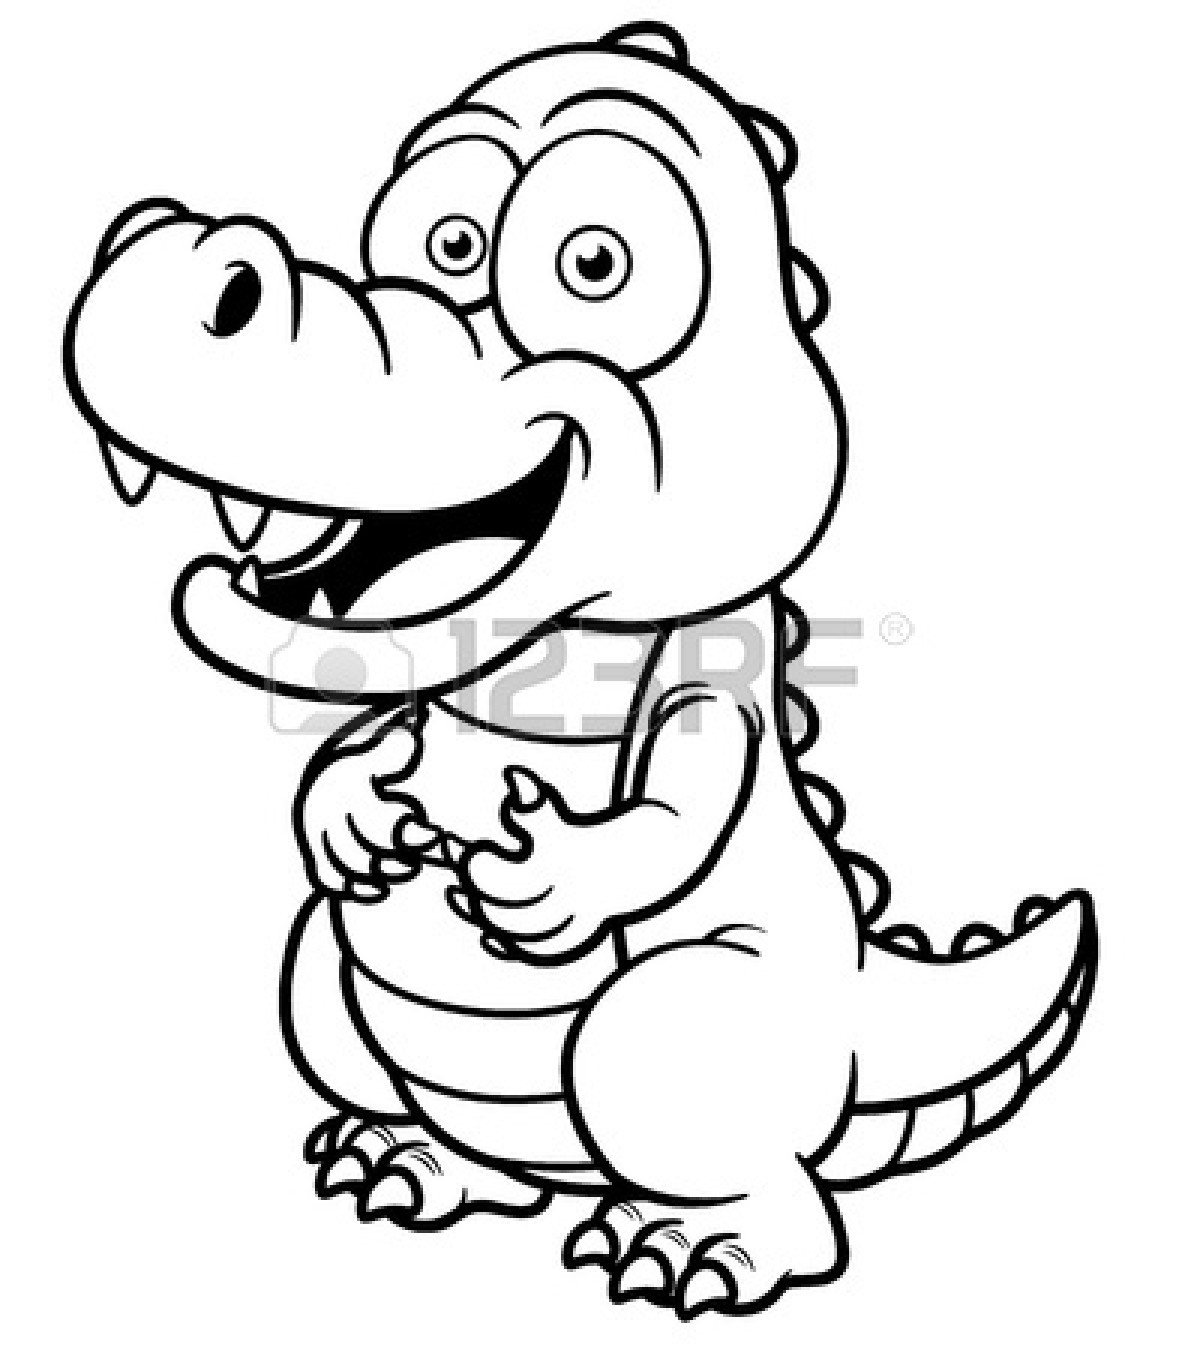 1182x1350 Crocodile Drawing Outline Clipart Panda